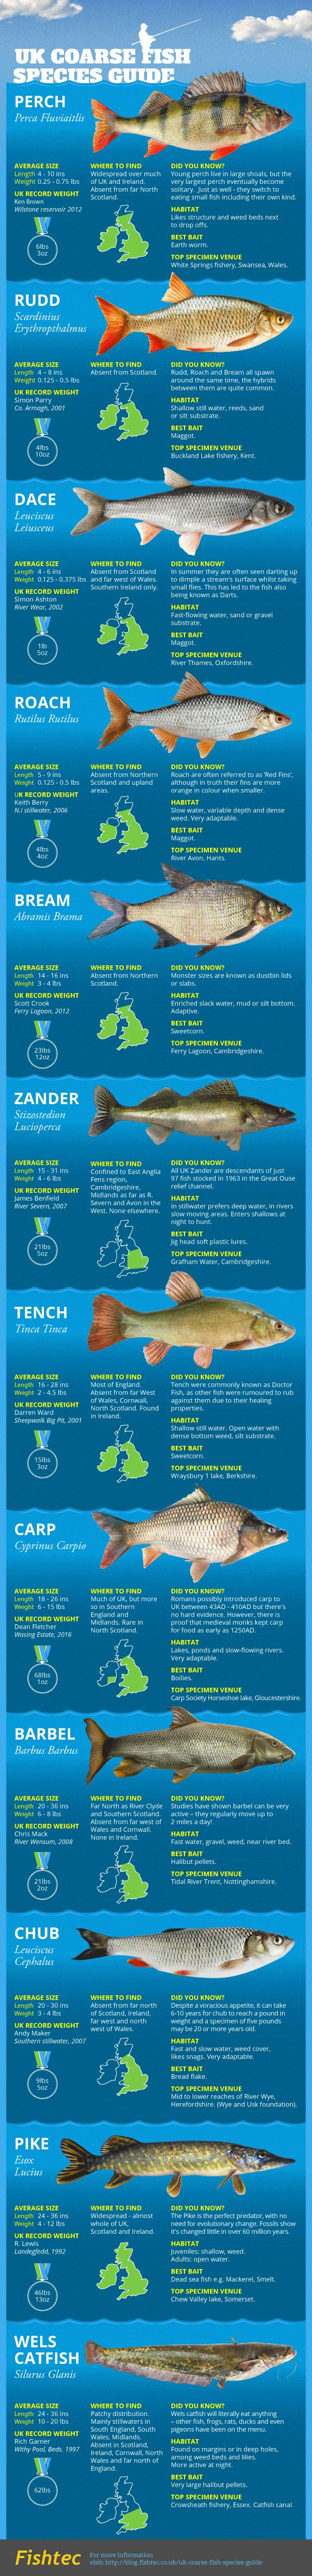 Freshwater fish dace - Uk Coarse Fish Species Guide Infographic